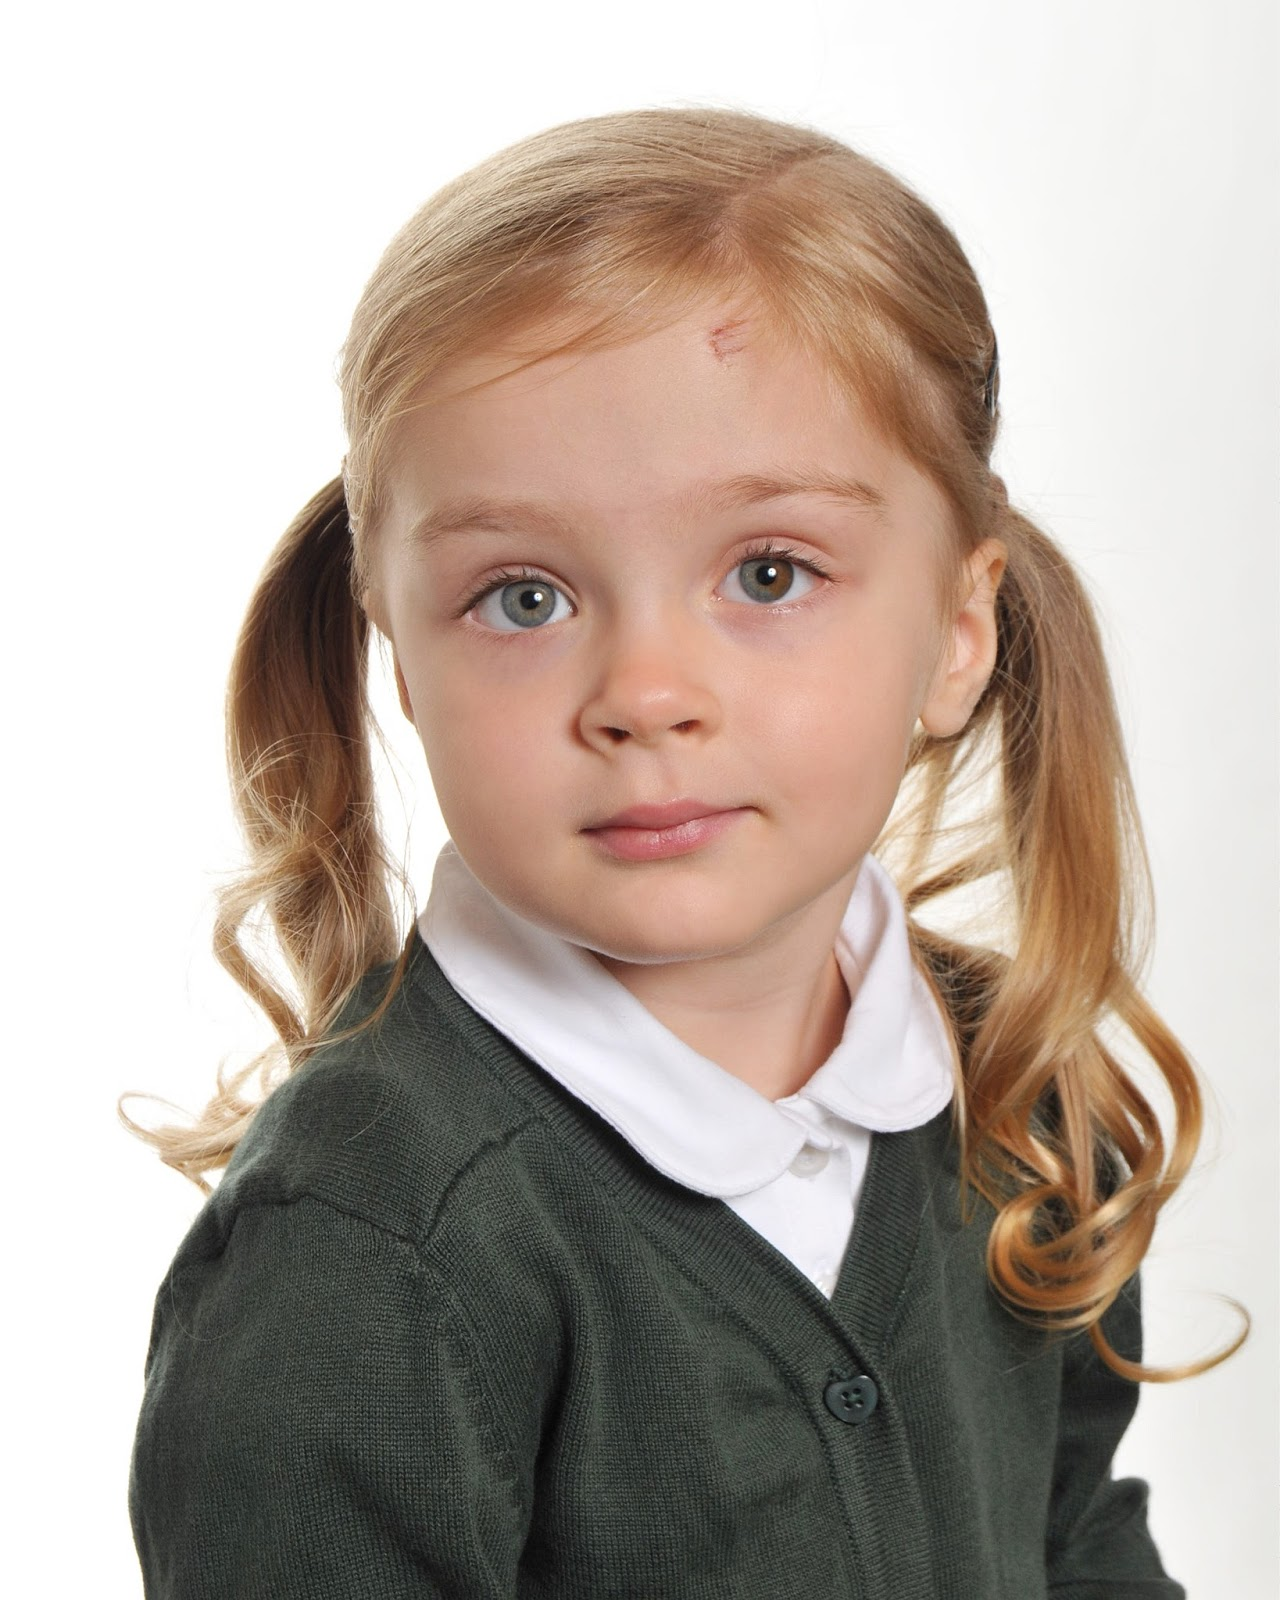 School picture of a girl